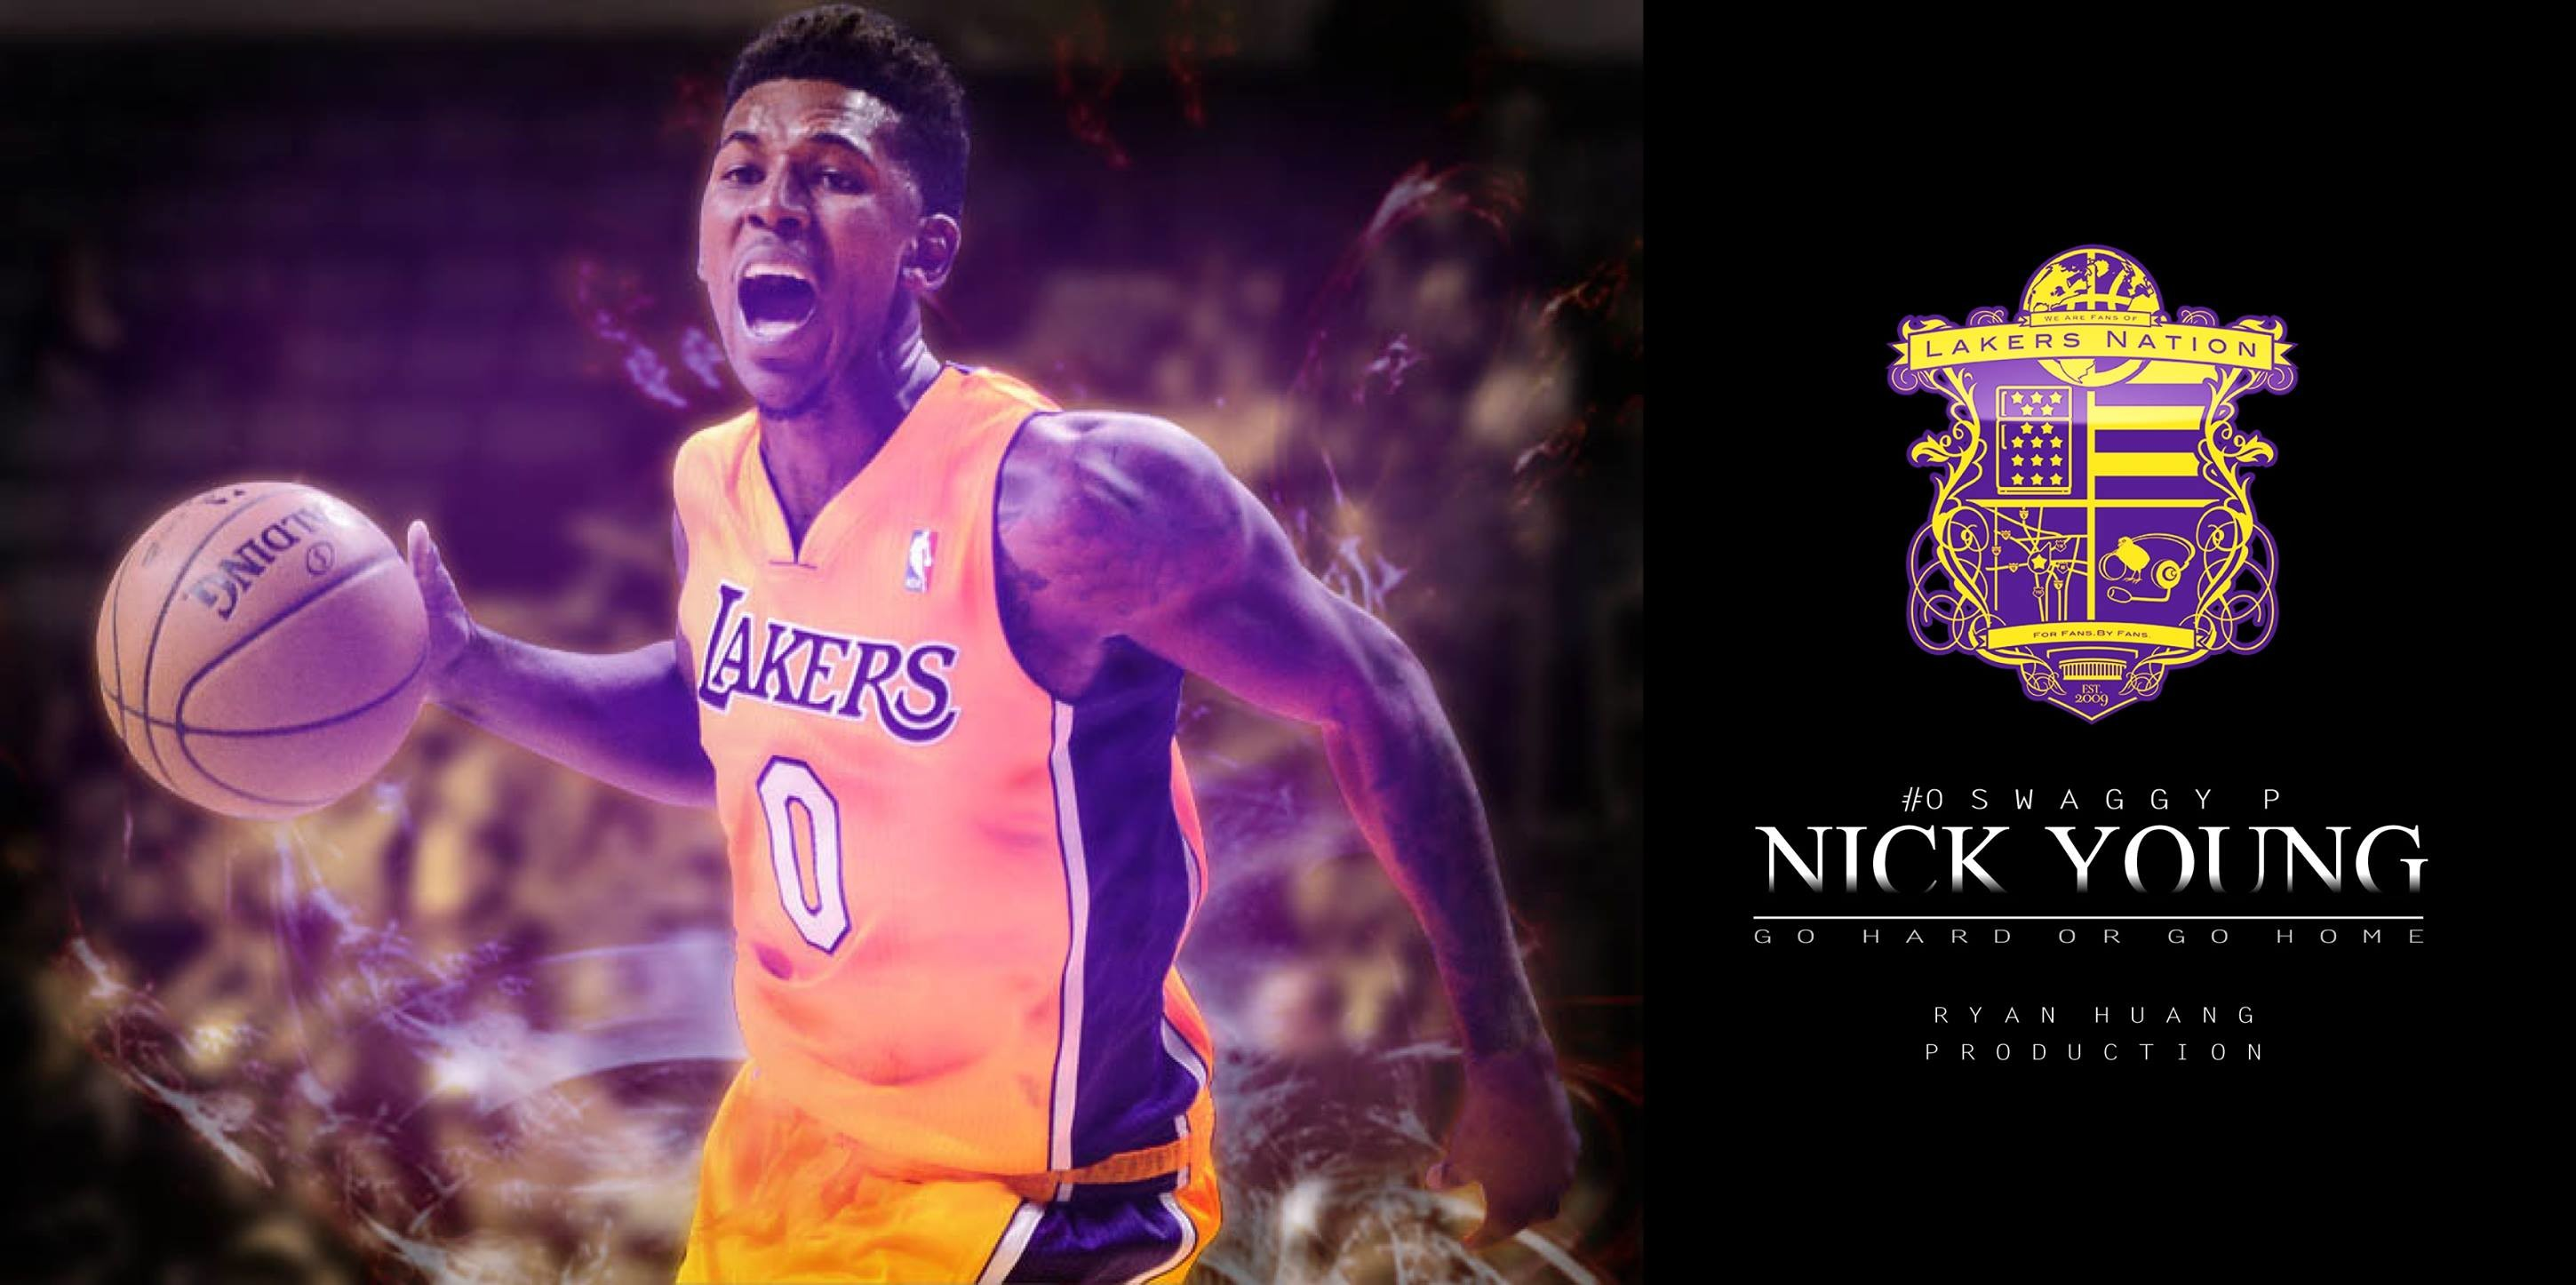 Nick Young Poster by RyanHuang7846 Nick Young Poster by RyanHuang7846